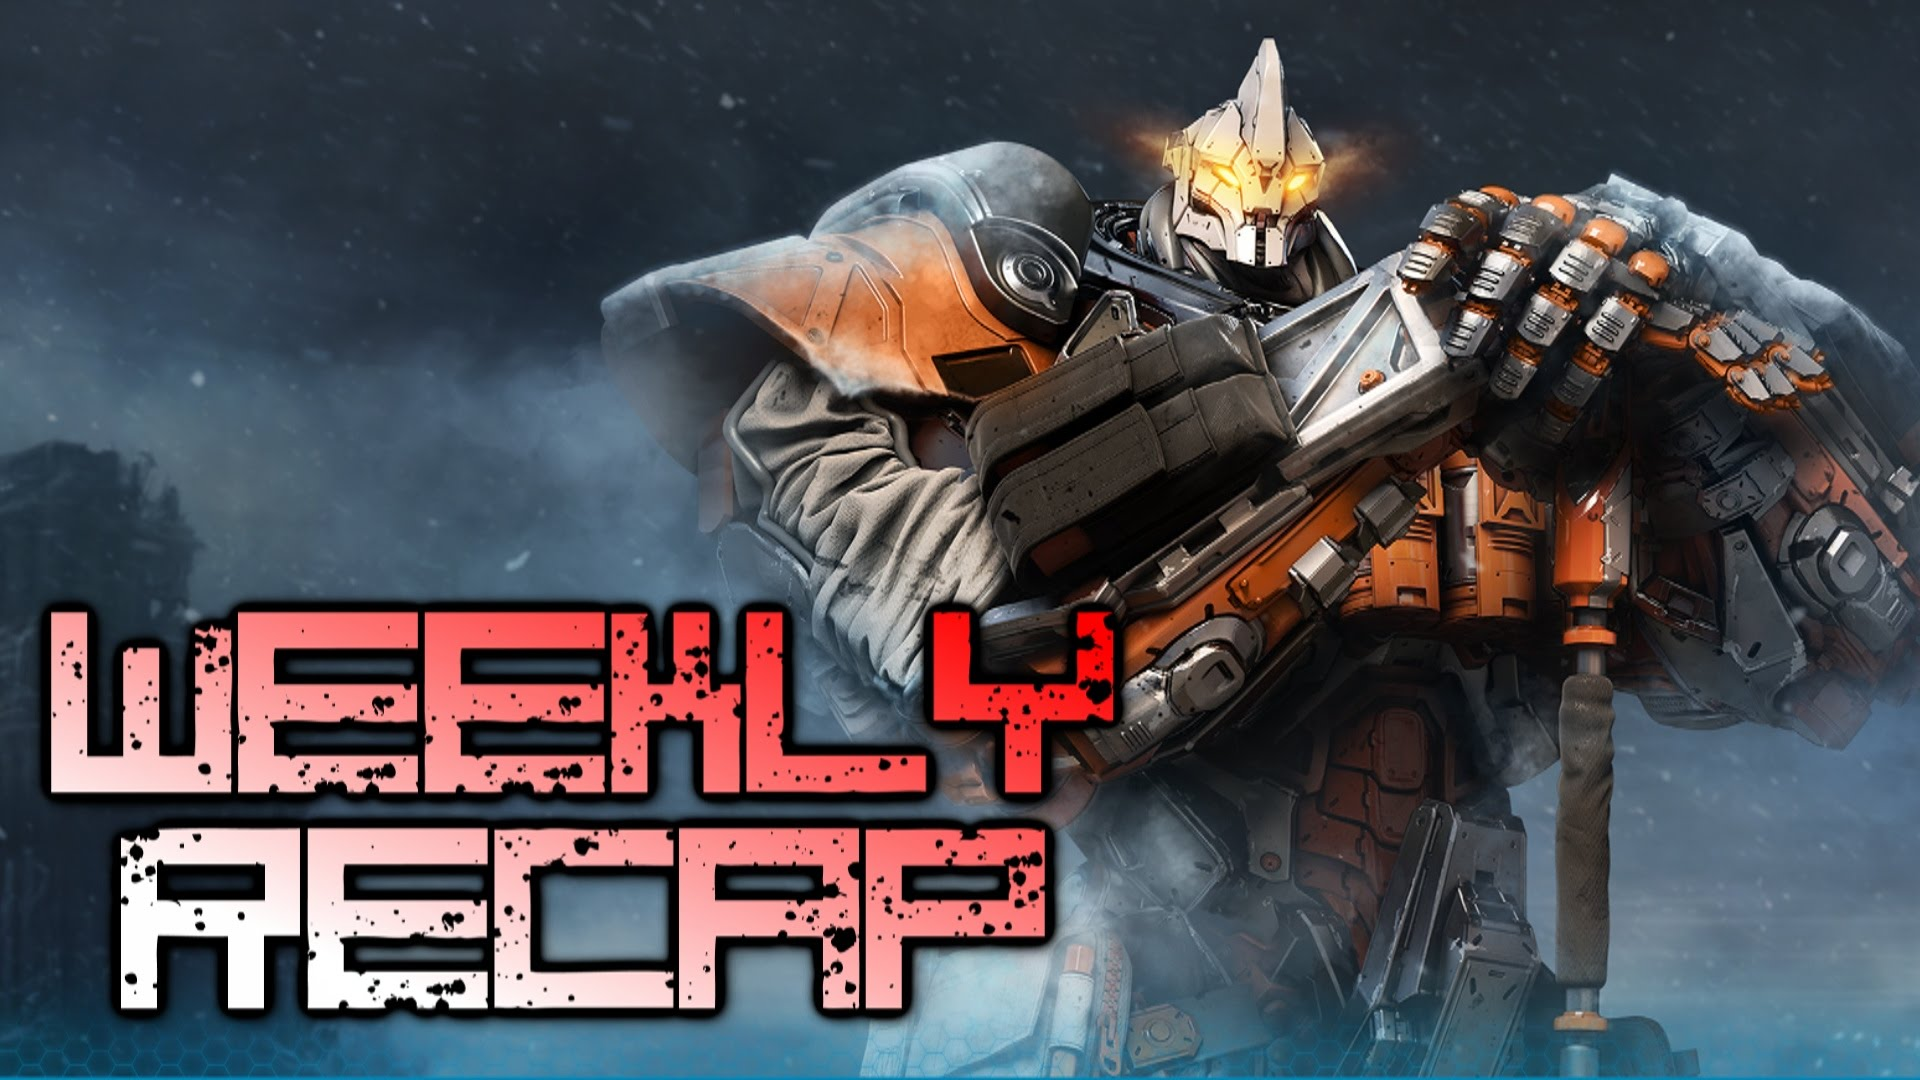 Weekly Gaming Recap #1 August 1st w/JamesBl0nde